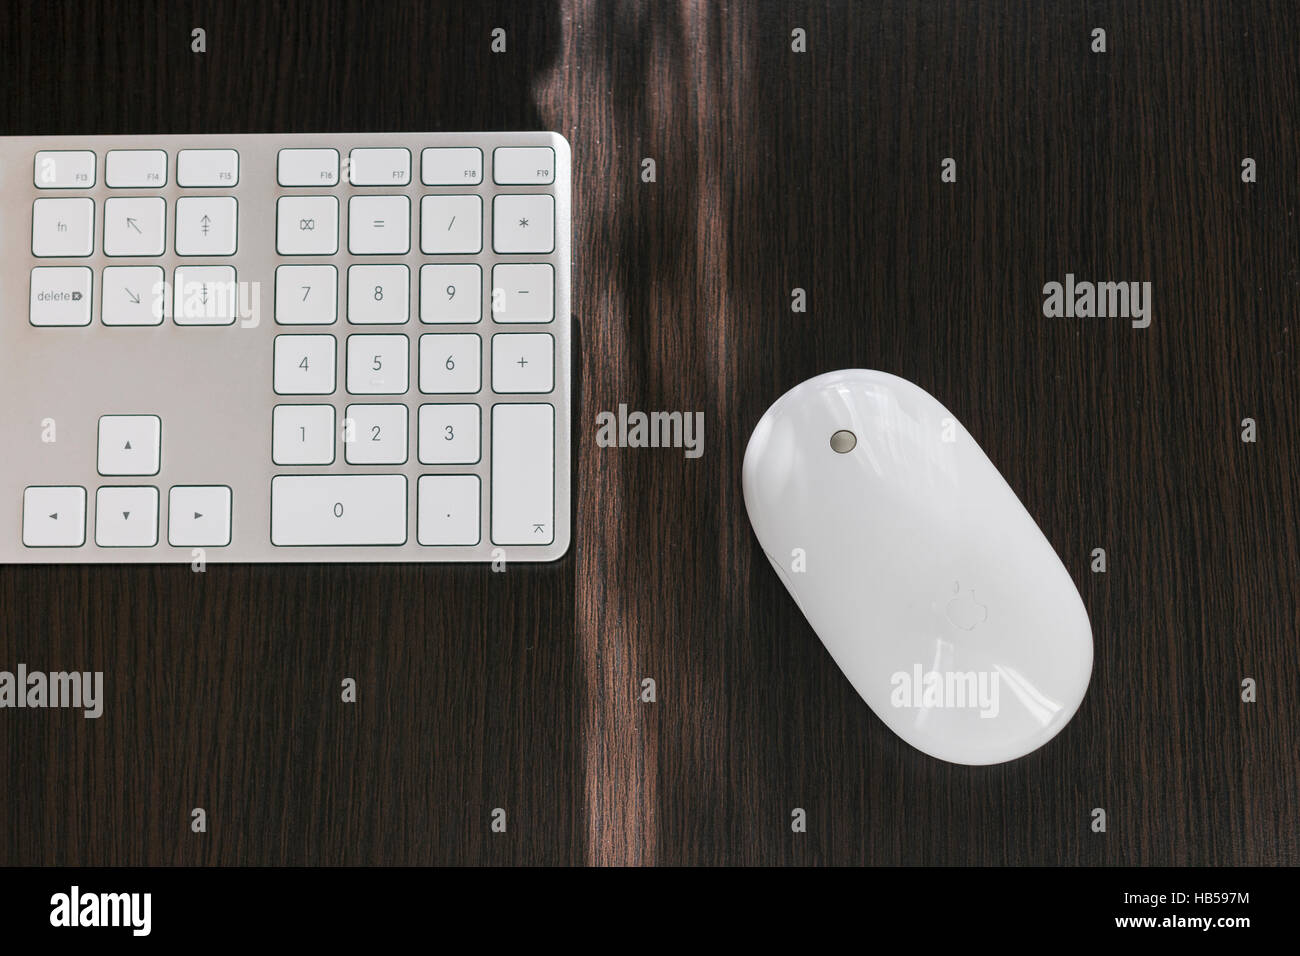 Apple mighty mouse on the dark desk next to the white keyboard - Stock Image